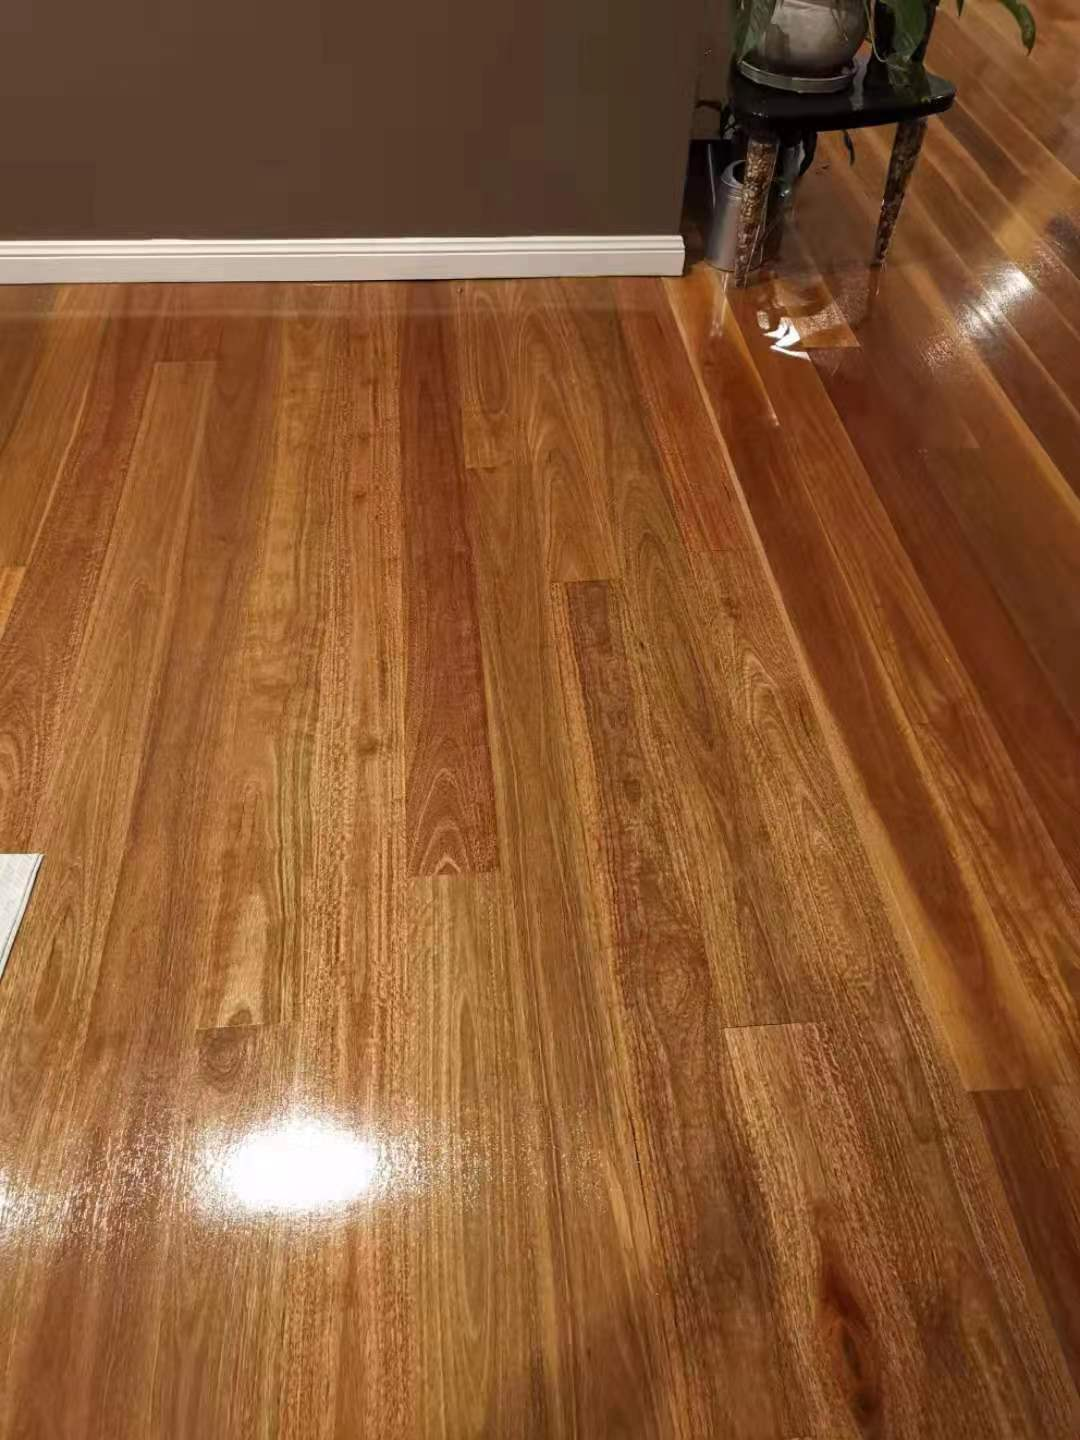 Sand and polish - Spotted Gum - 003